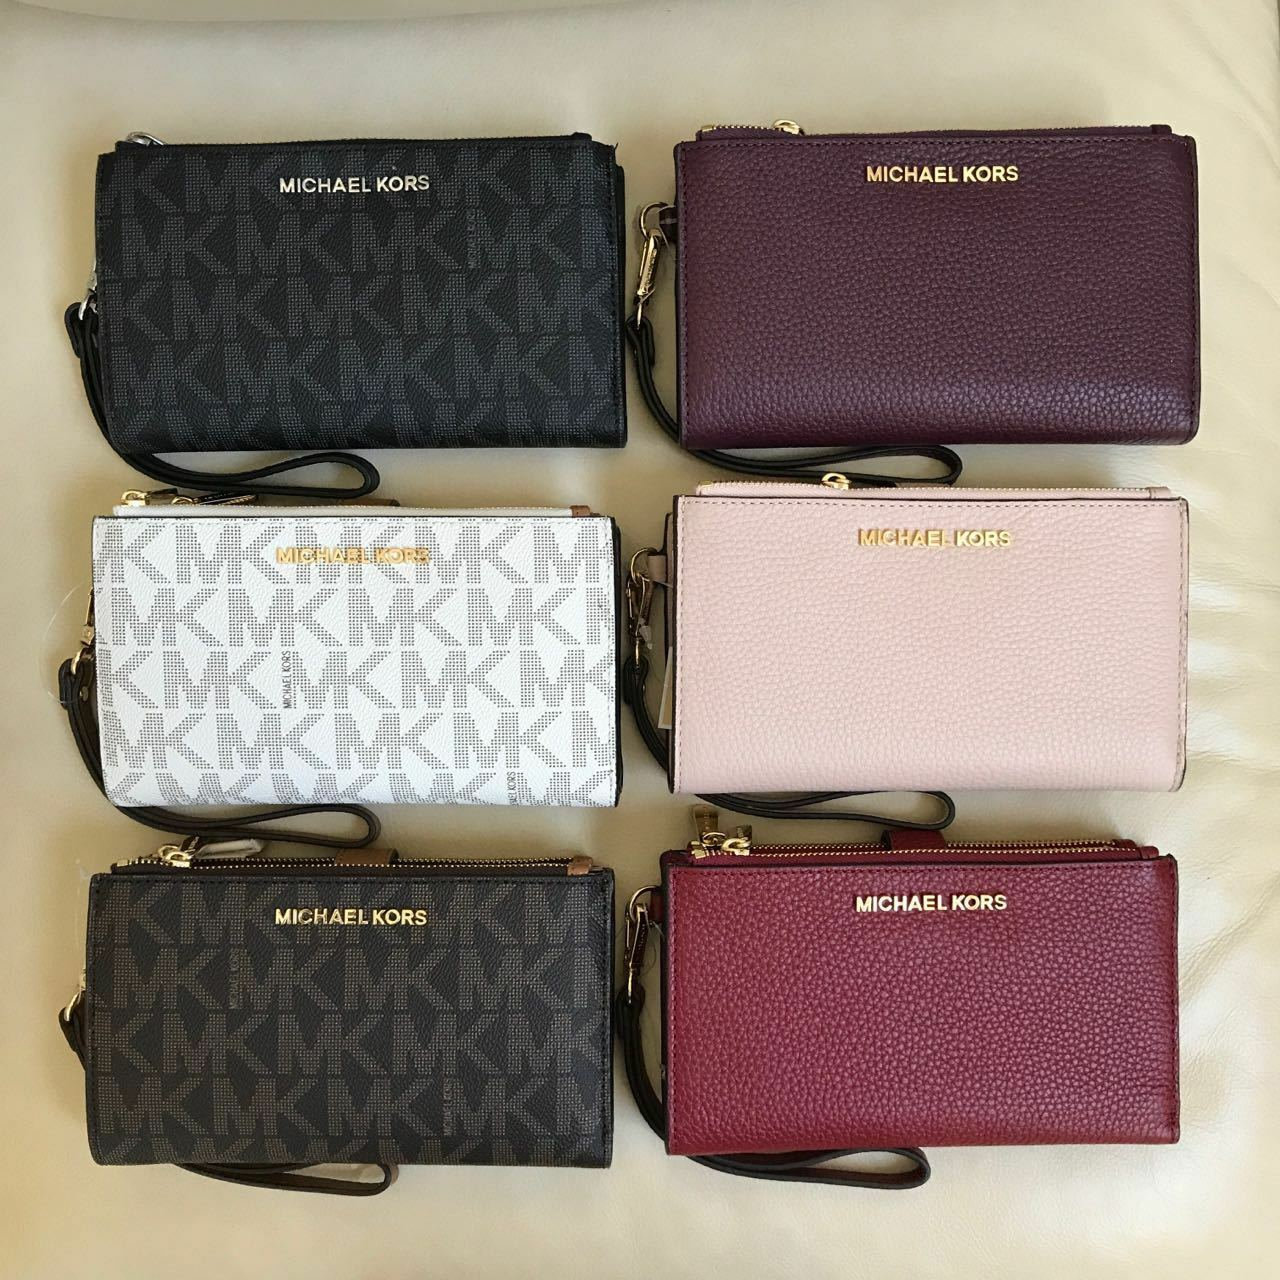 Michael Kors - NEW Michael Kors Jet Set Double Zip Phone Case Wallet Wristlet Various Colors